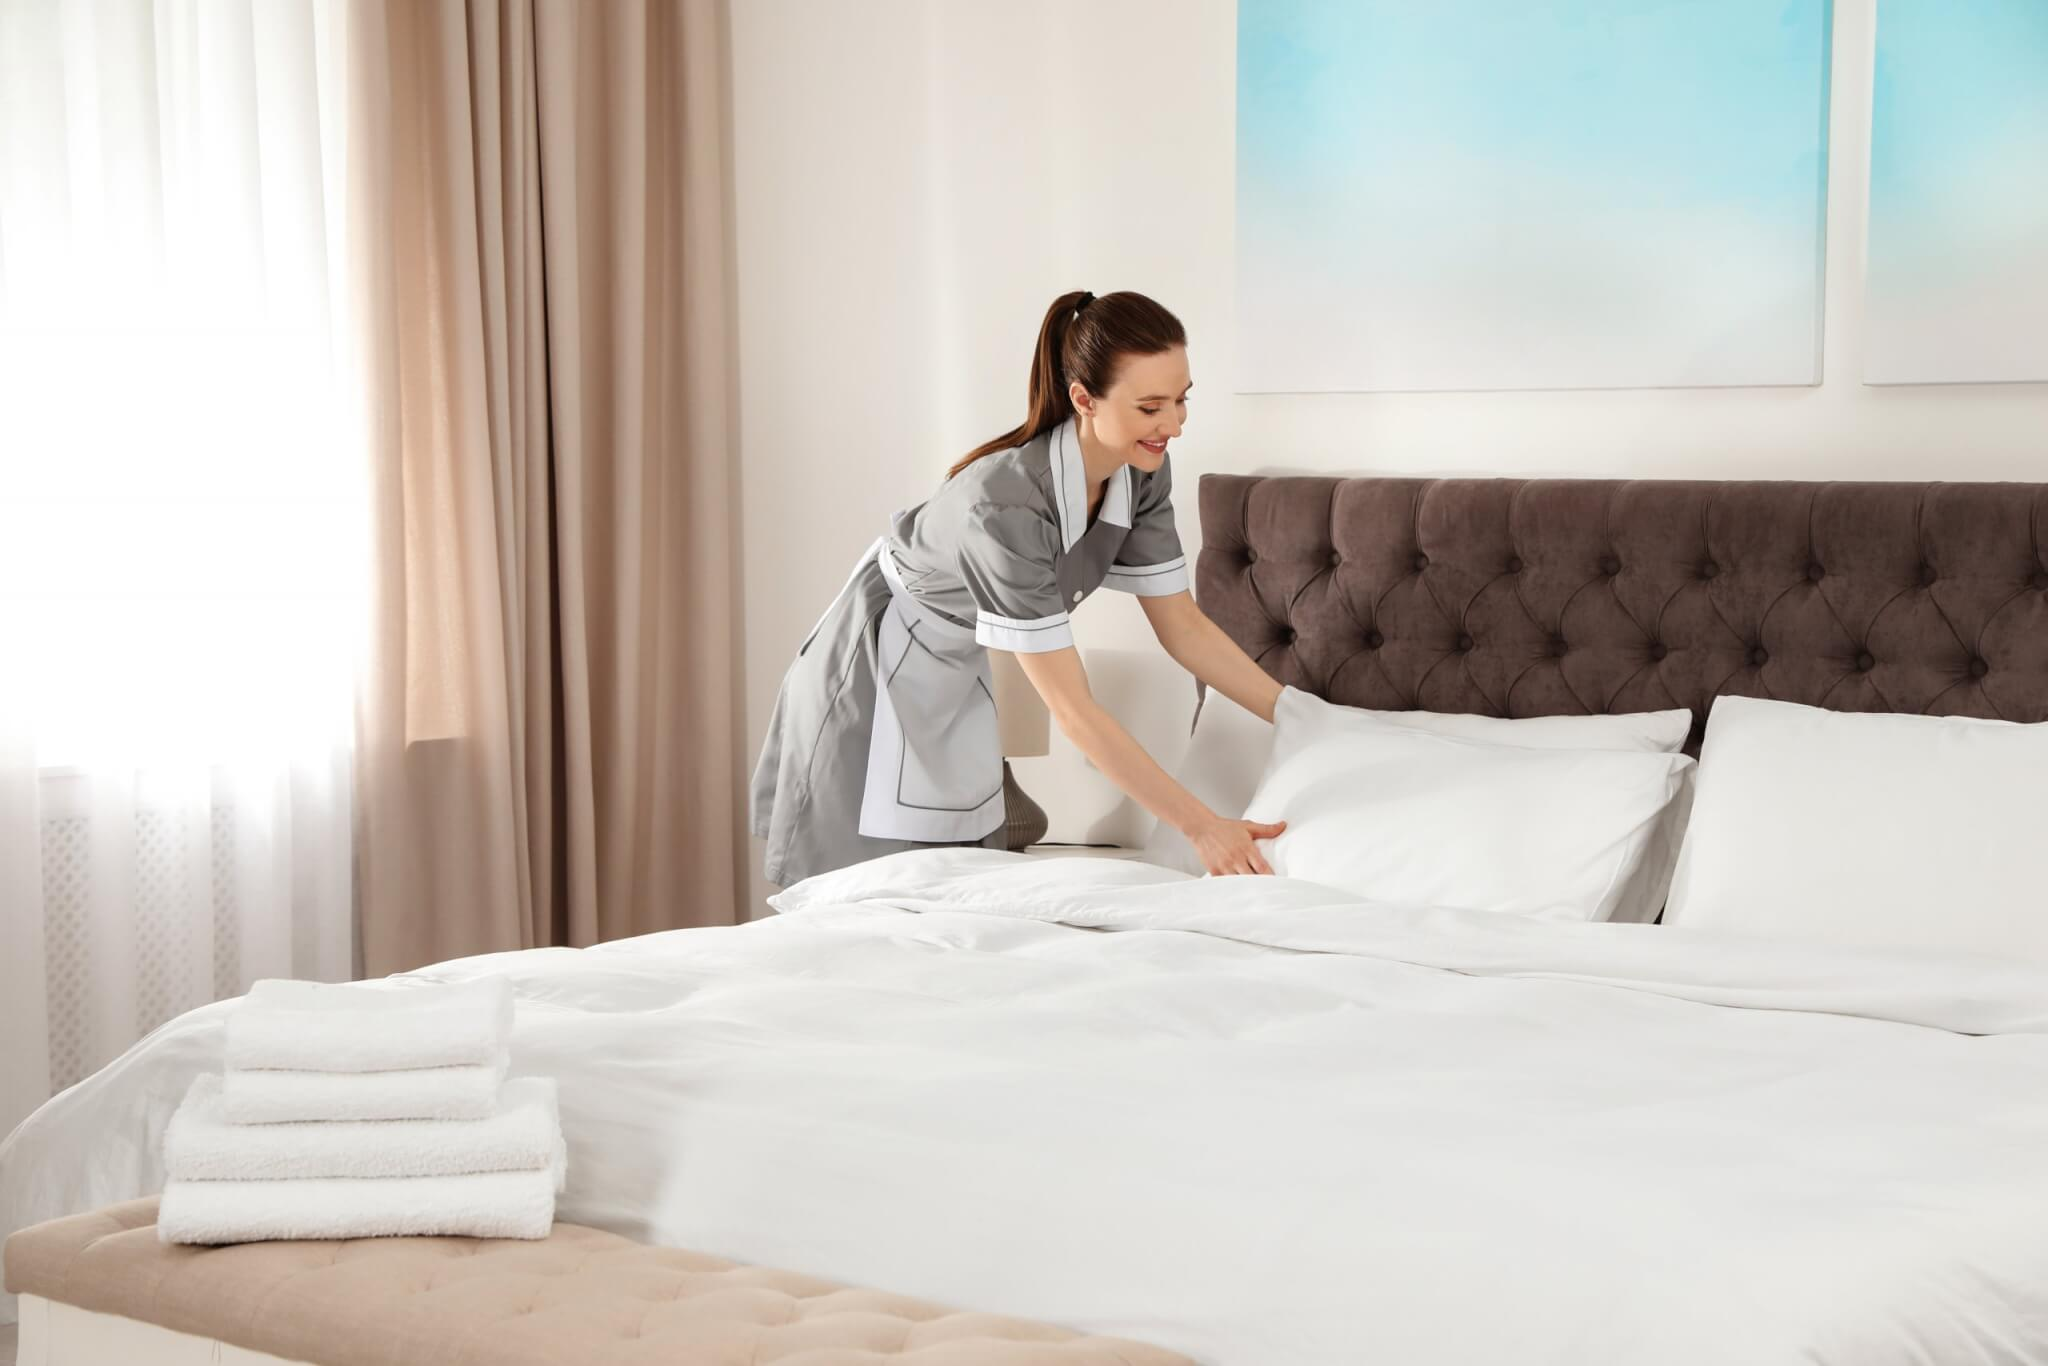 automate tasks for your boutique hotel operations